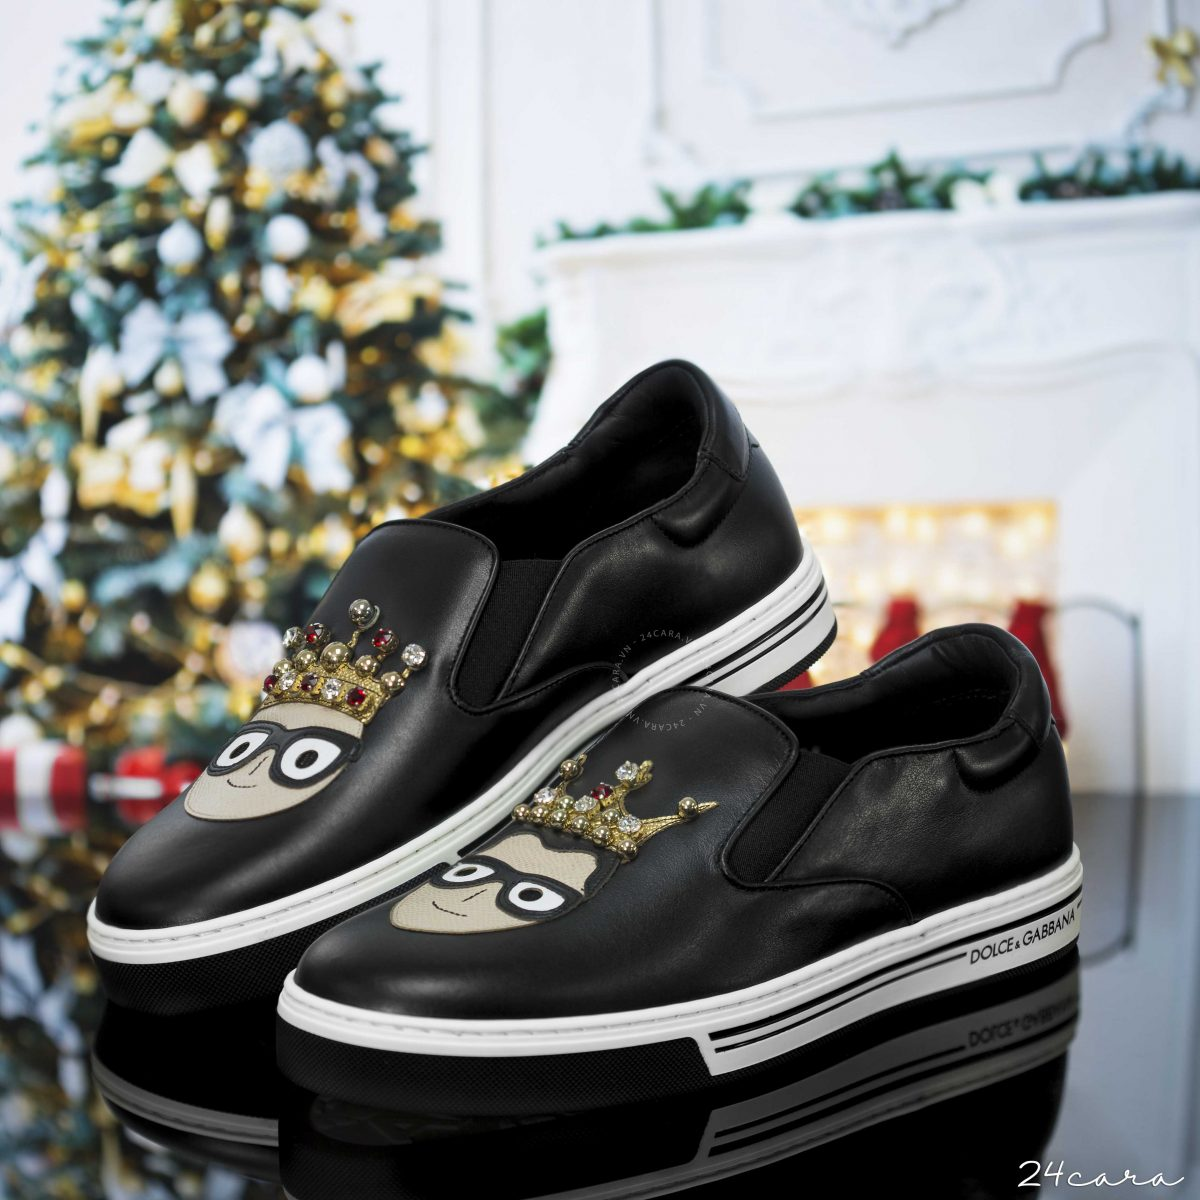 DOLCE&GABBANA SLIP ON WITH PATCHES OF DESIGNERS